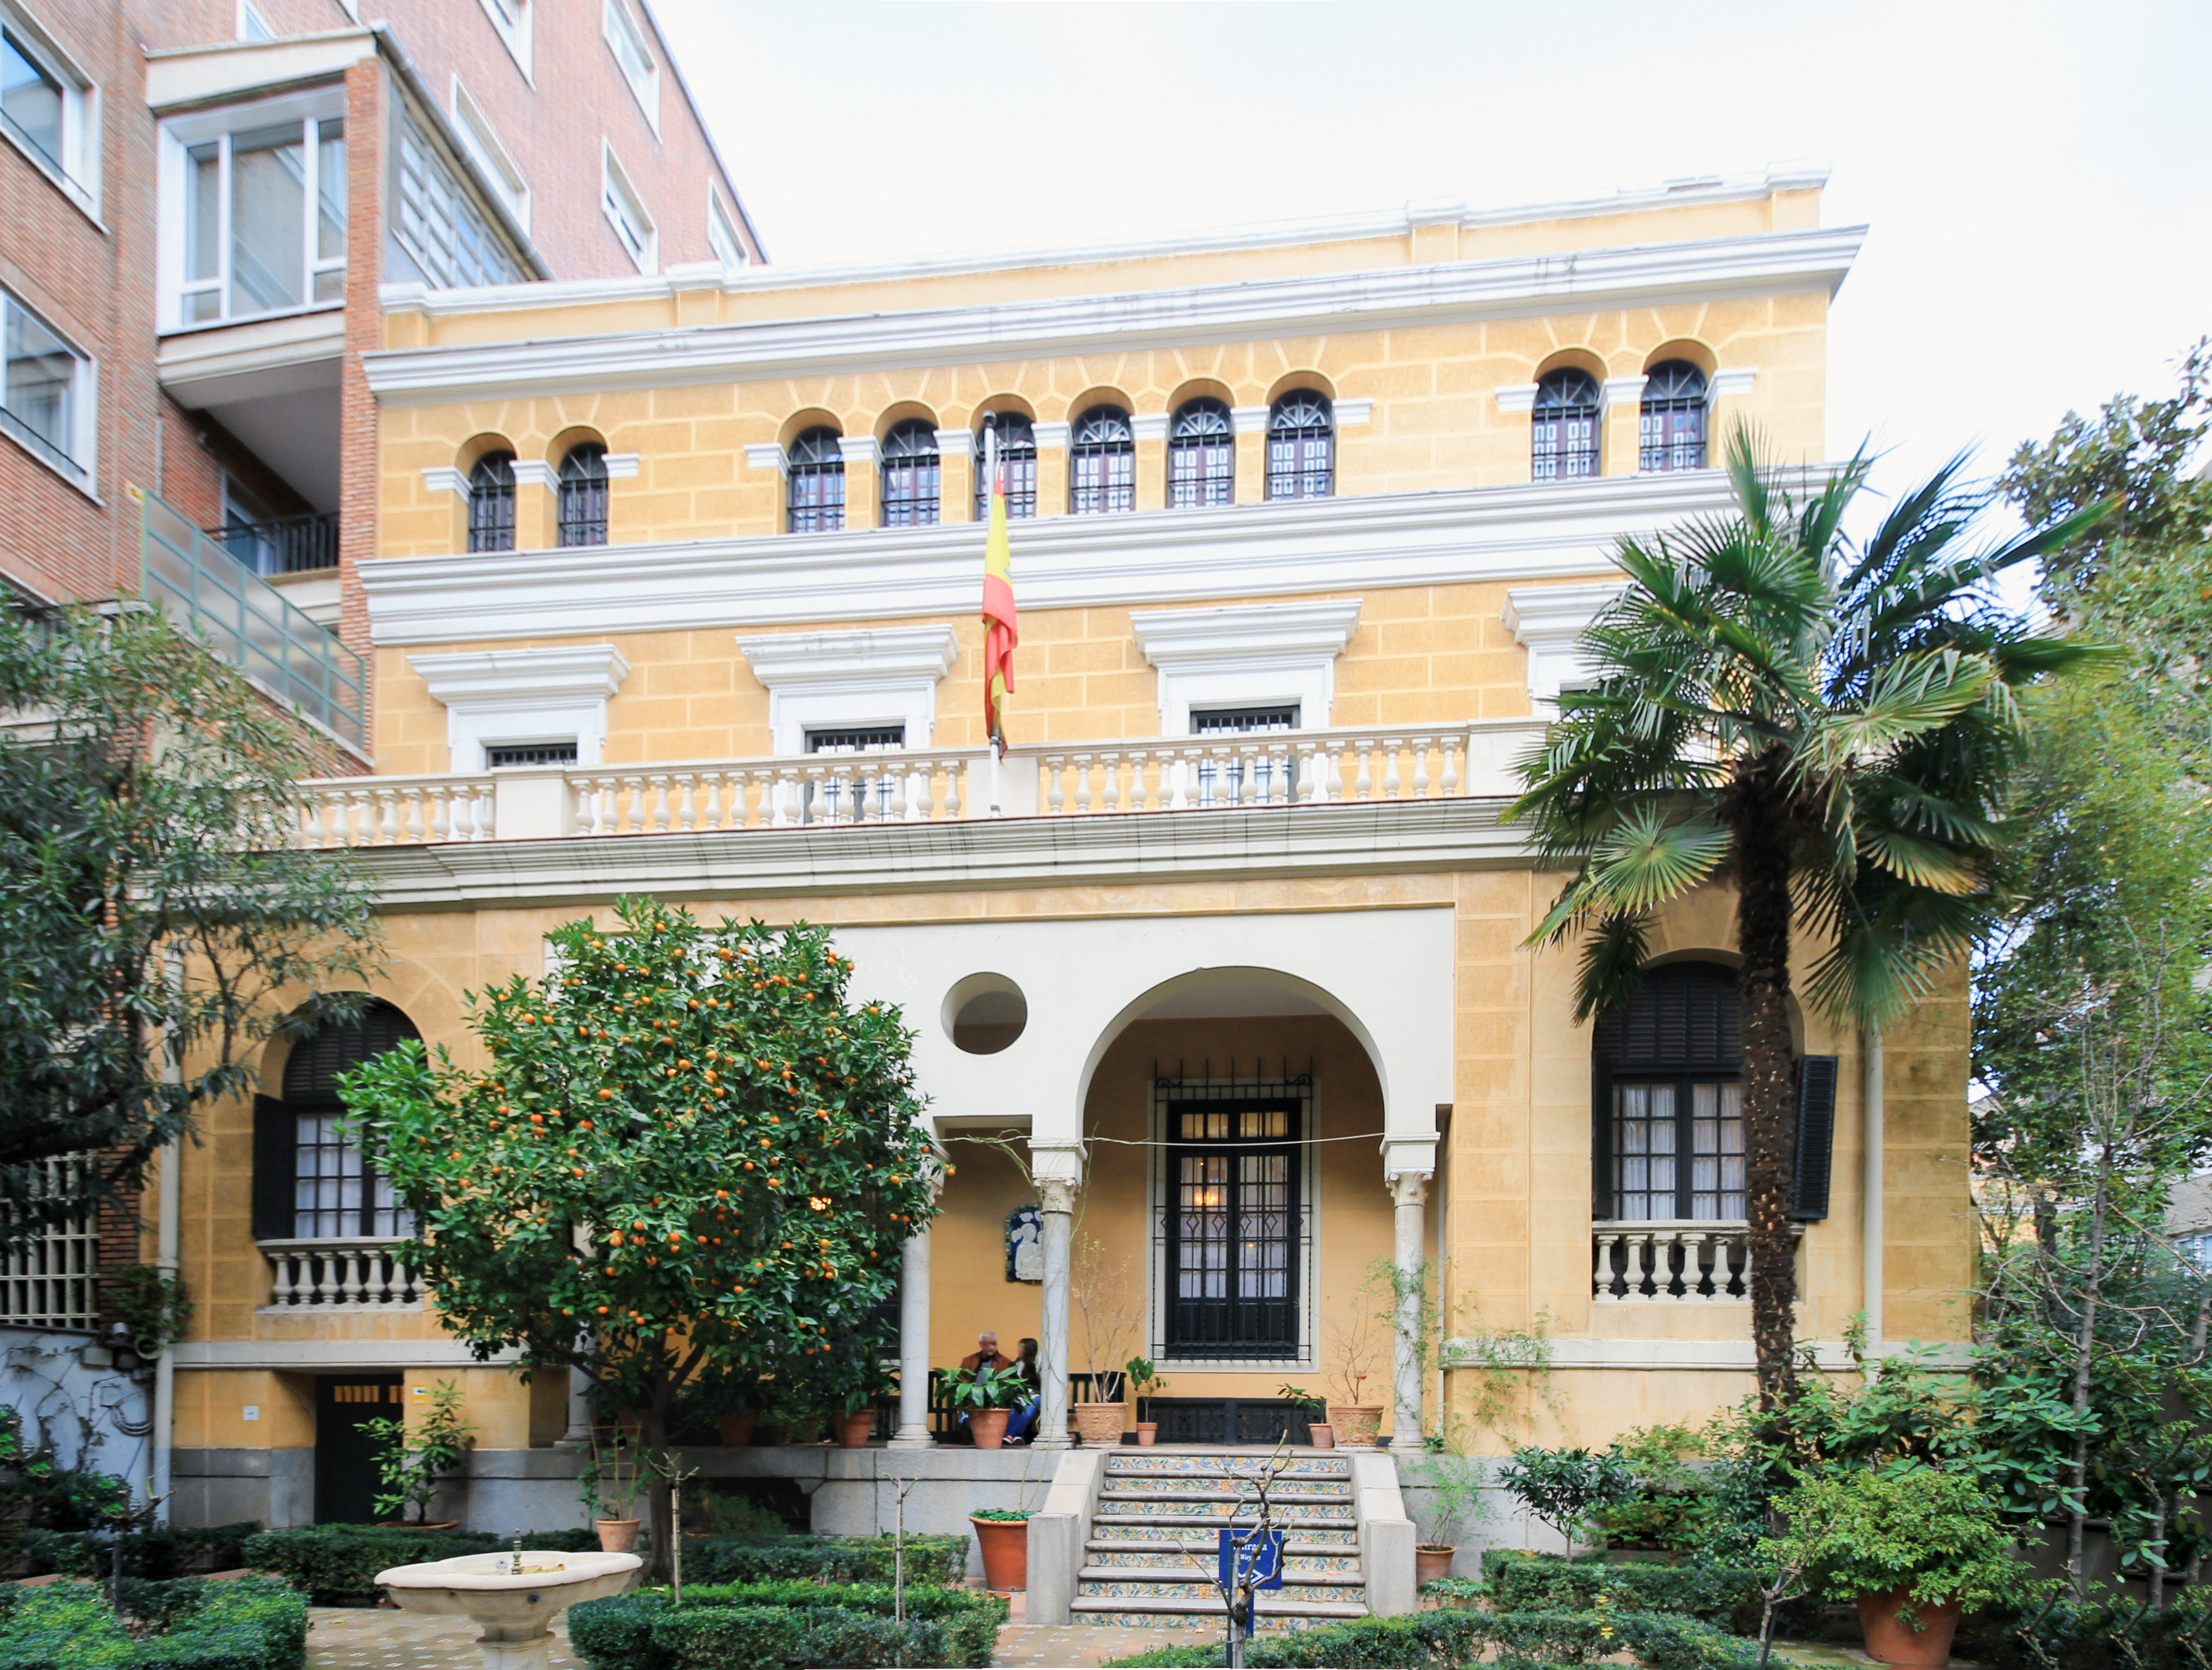 Museo Sorolla Madrid.File Museo Sorolla Madrid 07 Jpg Wikimedia Commons